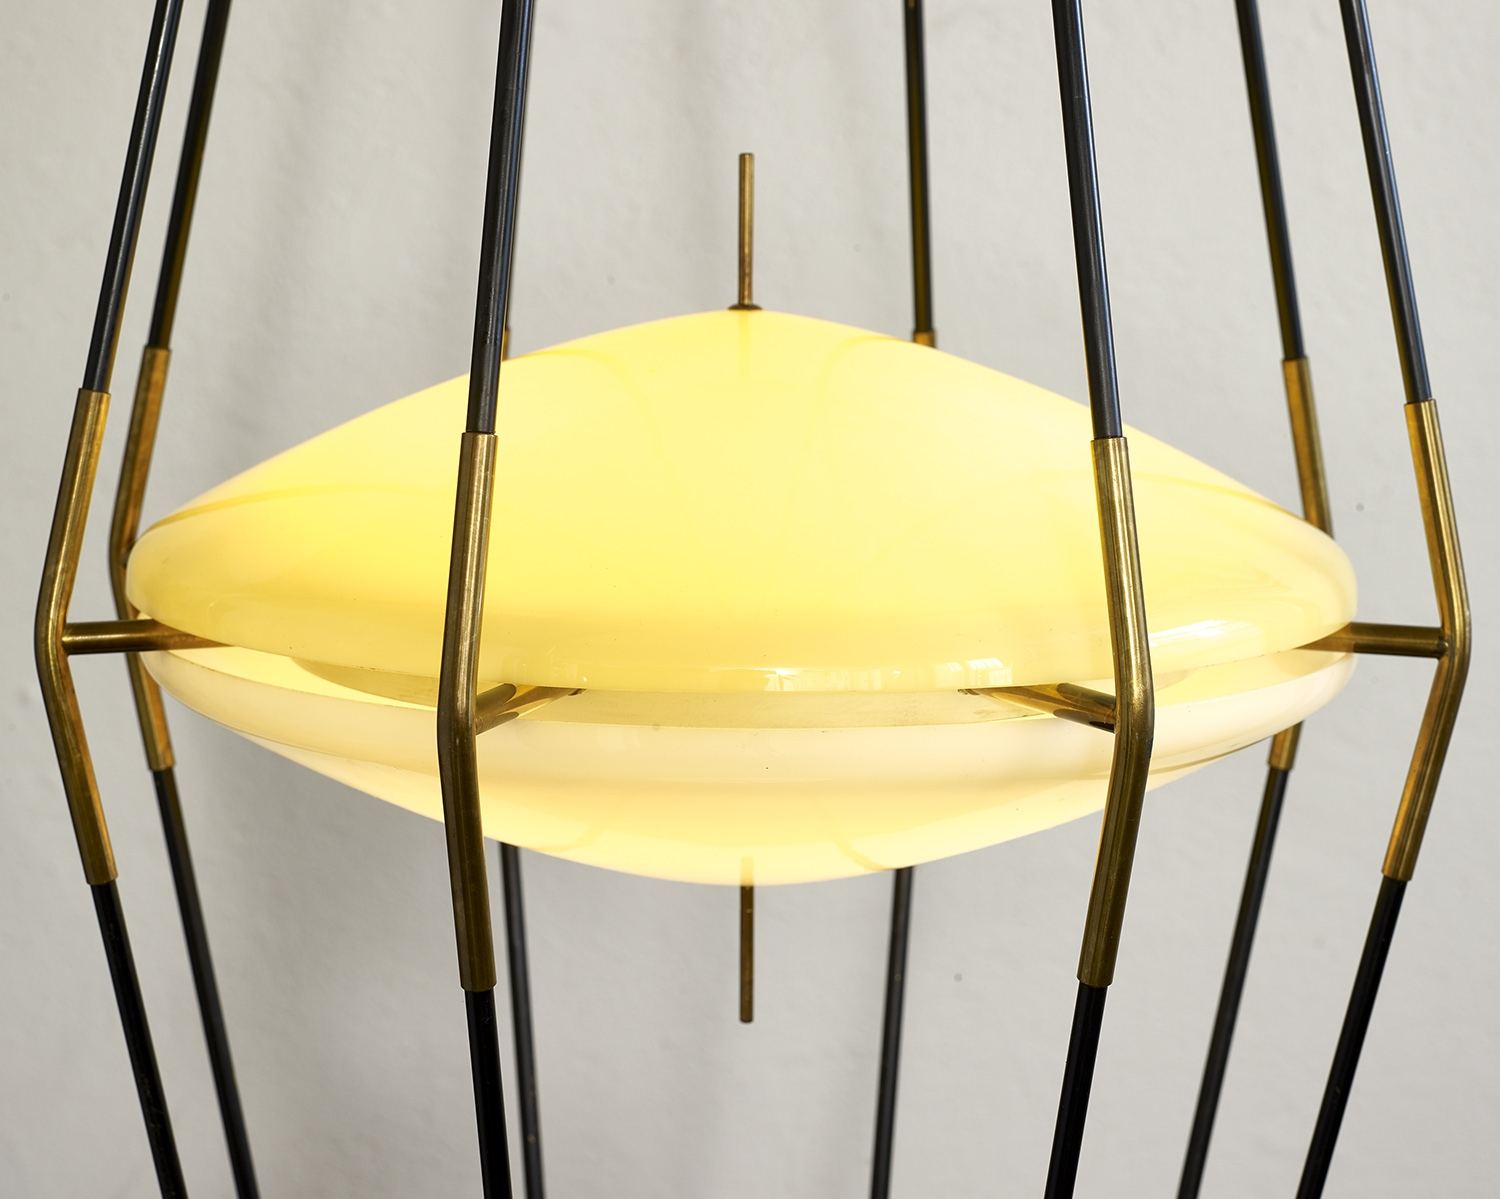 rare-model-12628-siluro-floor-lamp-by-angelo-lelii-for-arredoluce-1957-image-02